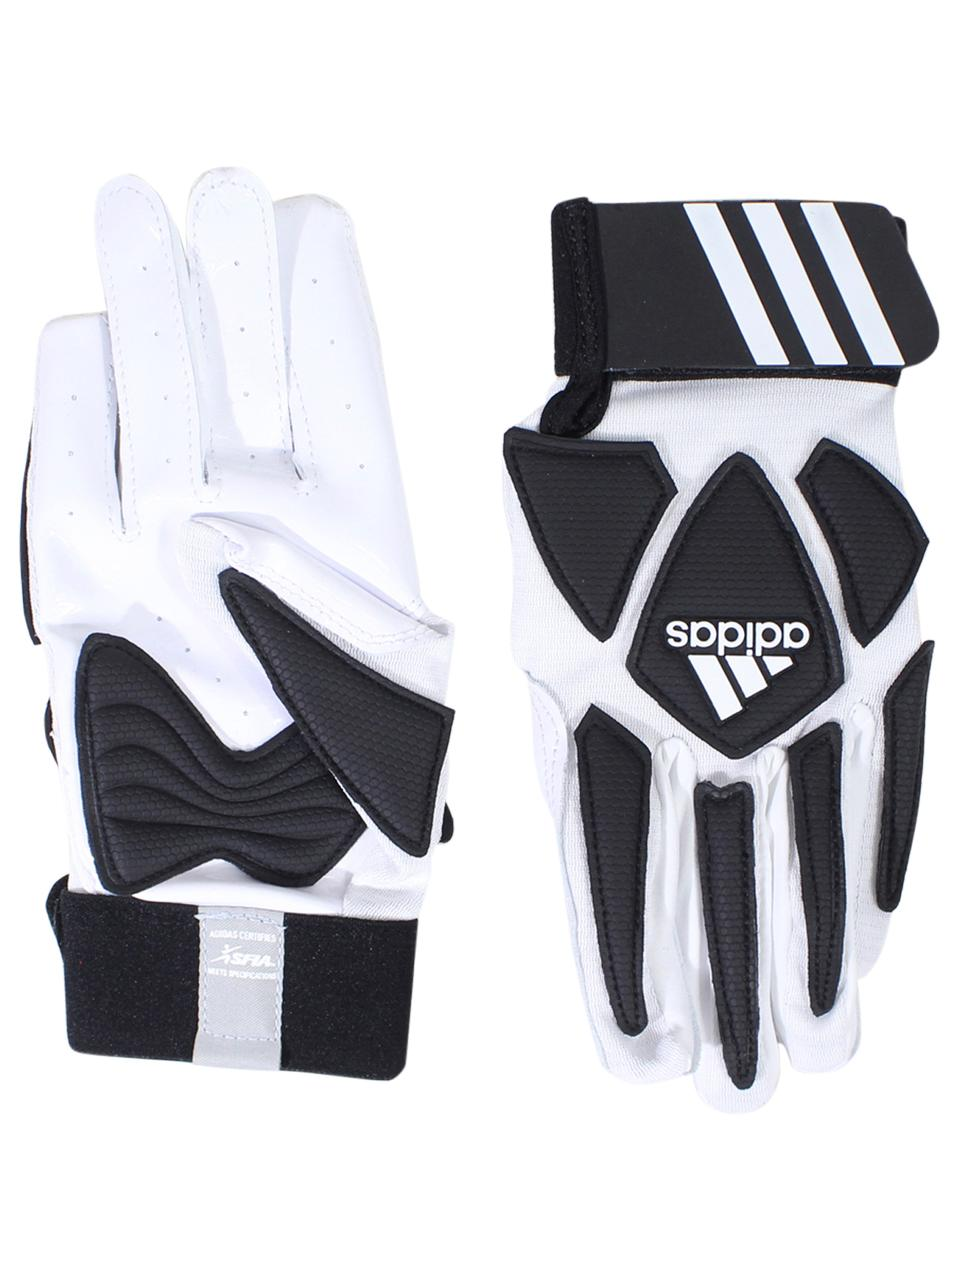 Adidas Men's Scorch-Destroy-2 Football Gloves